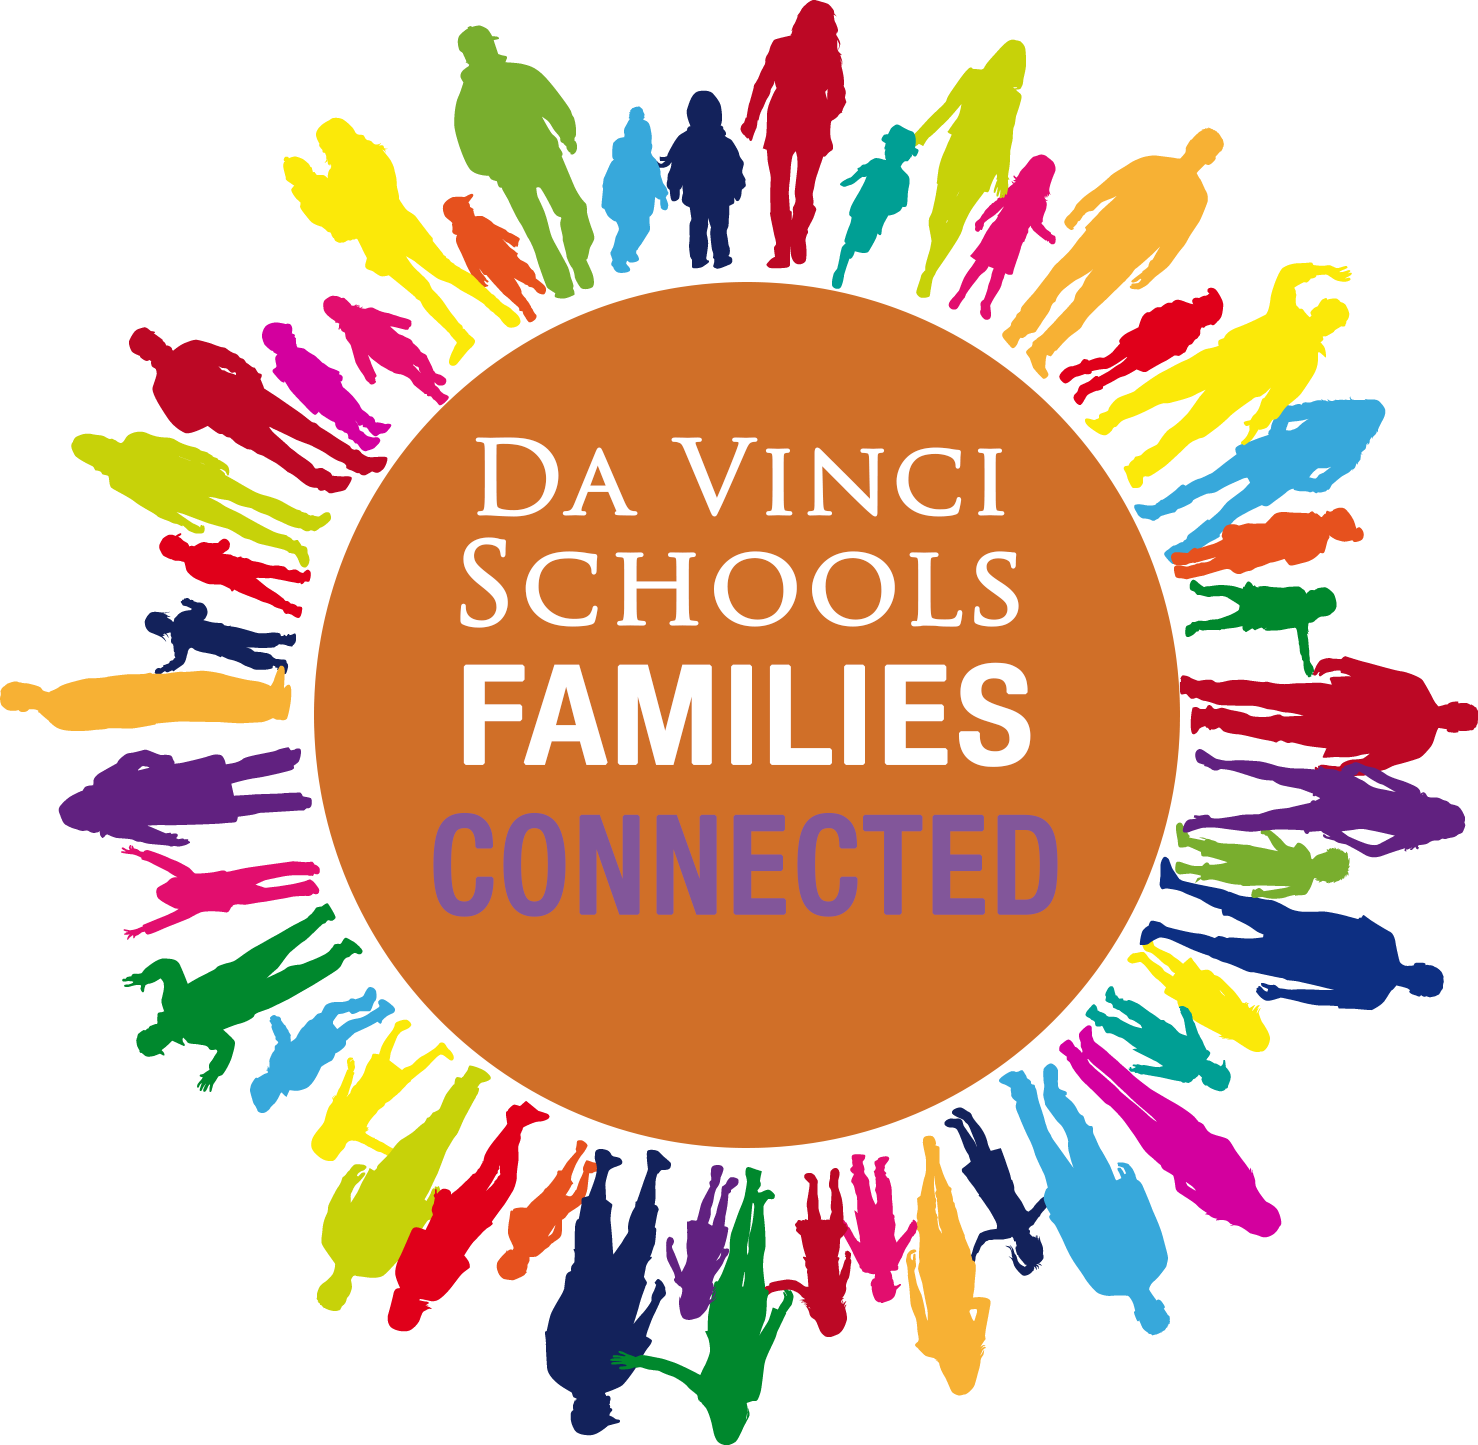 DaVinci Schools Families Connected